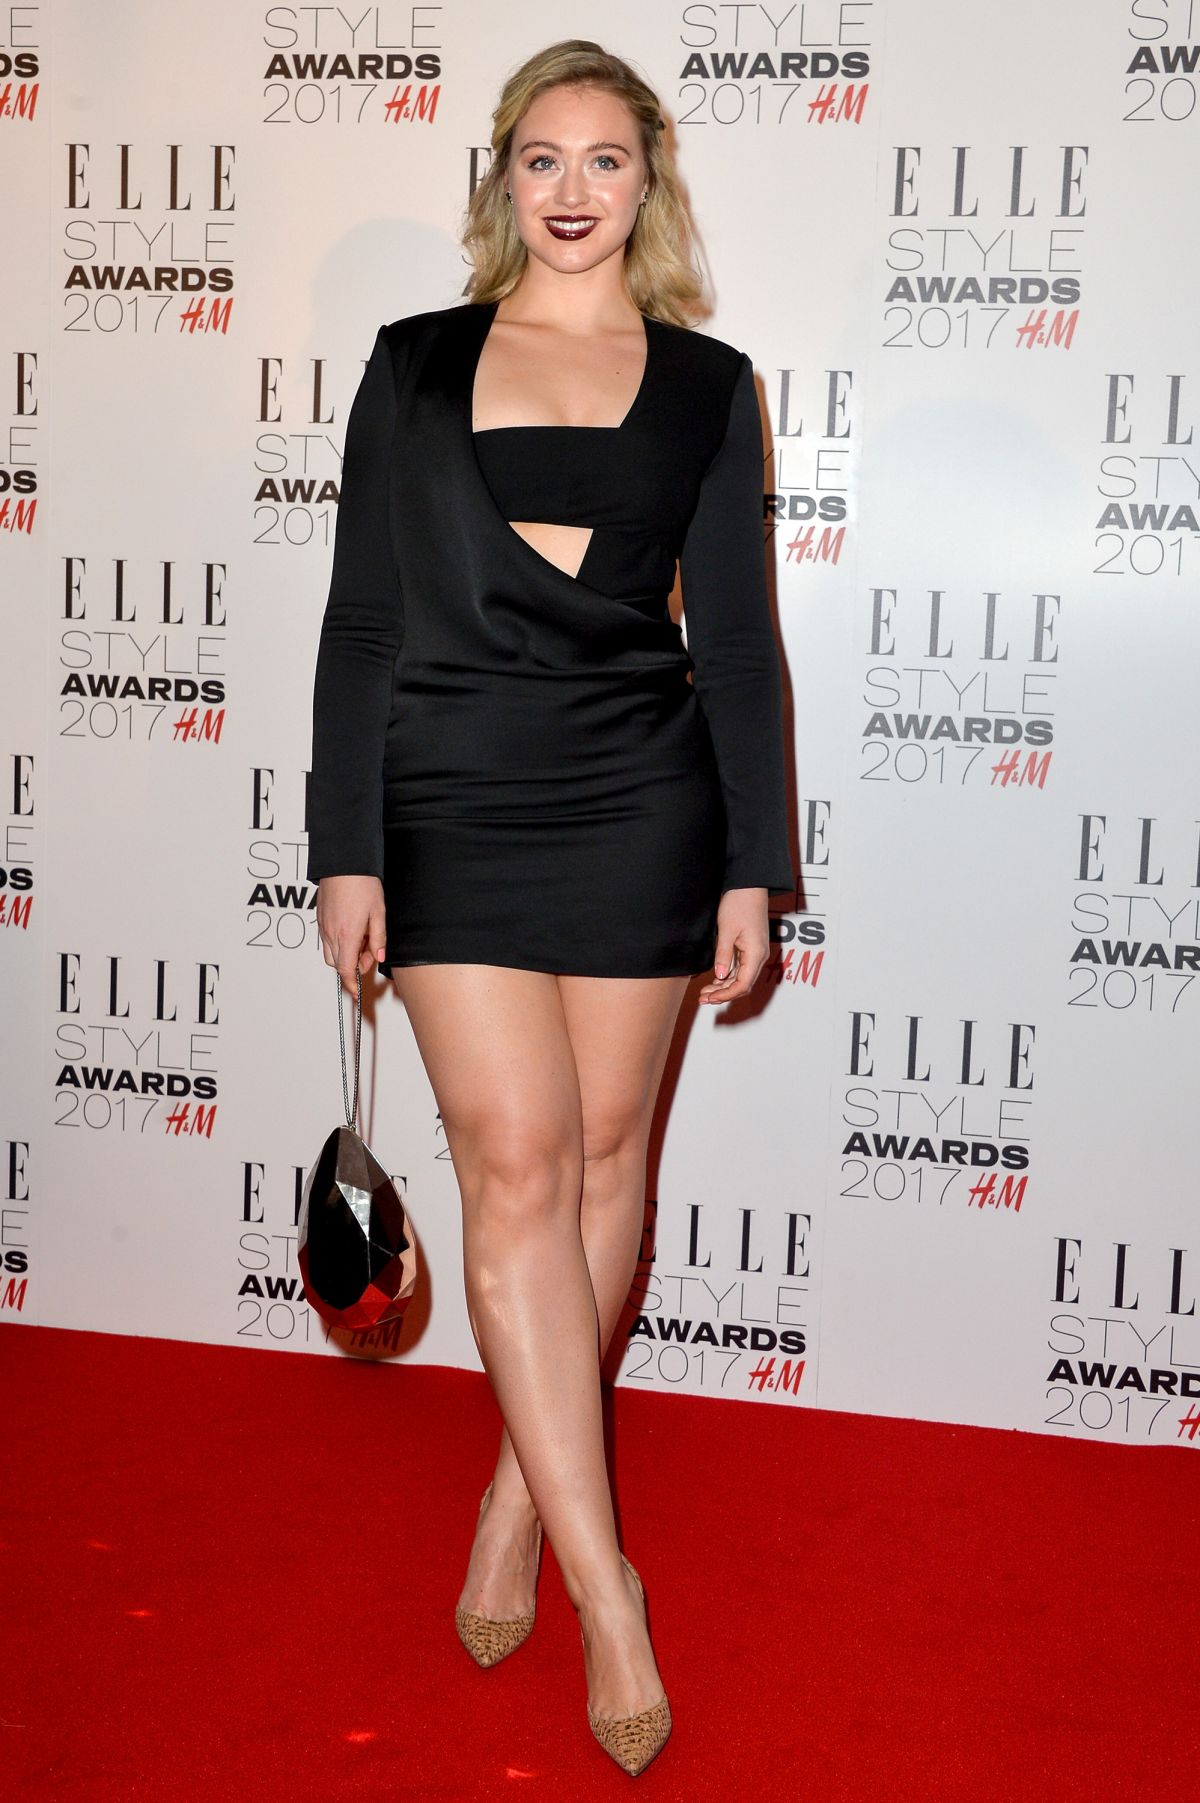 ISKRA LAWRENCE at Elle Style Awards 2017 in London 02/13